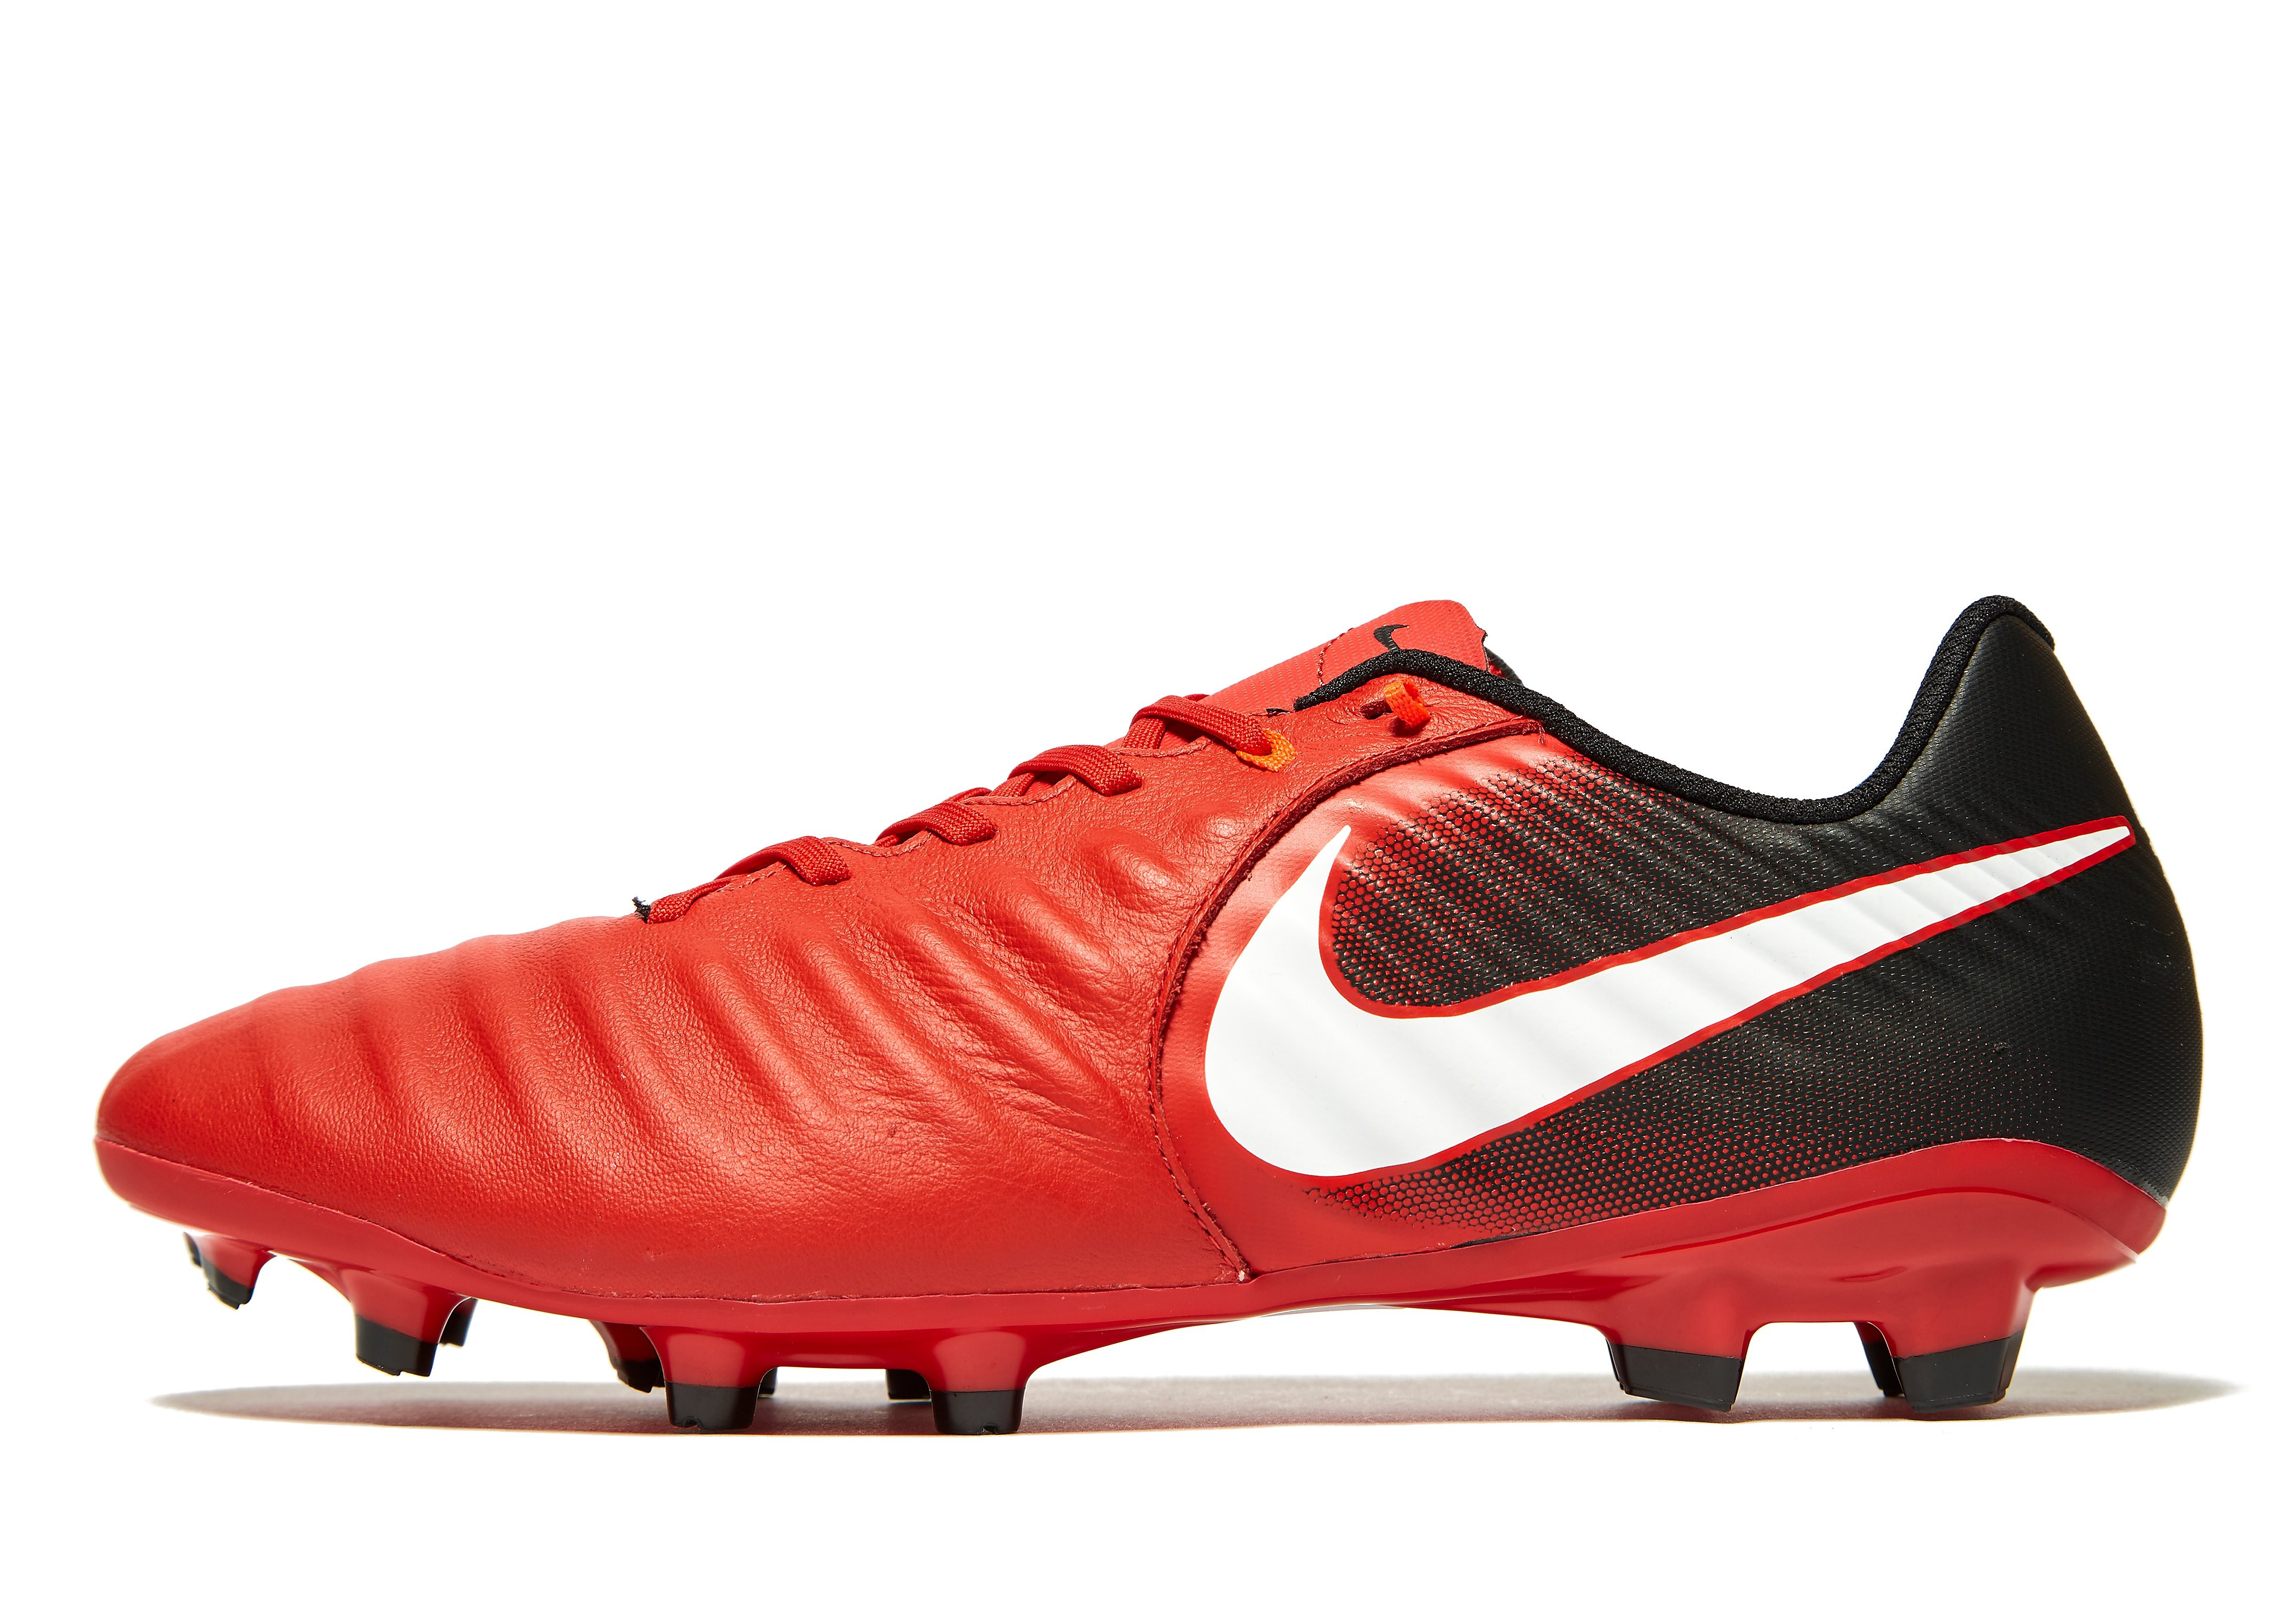 Nike Fire and Ice Tiempo Ligera IV FG